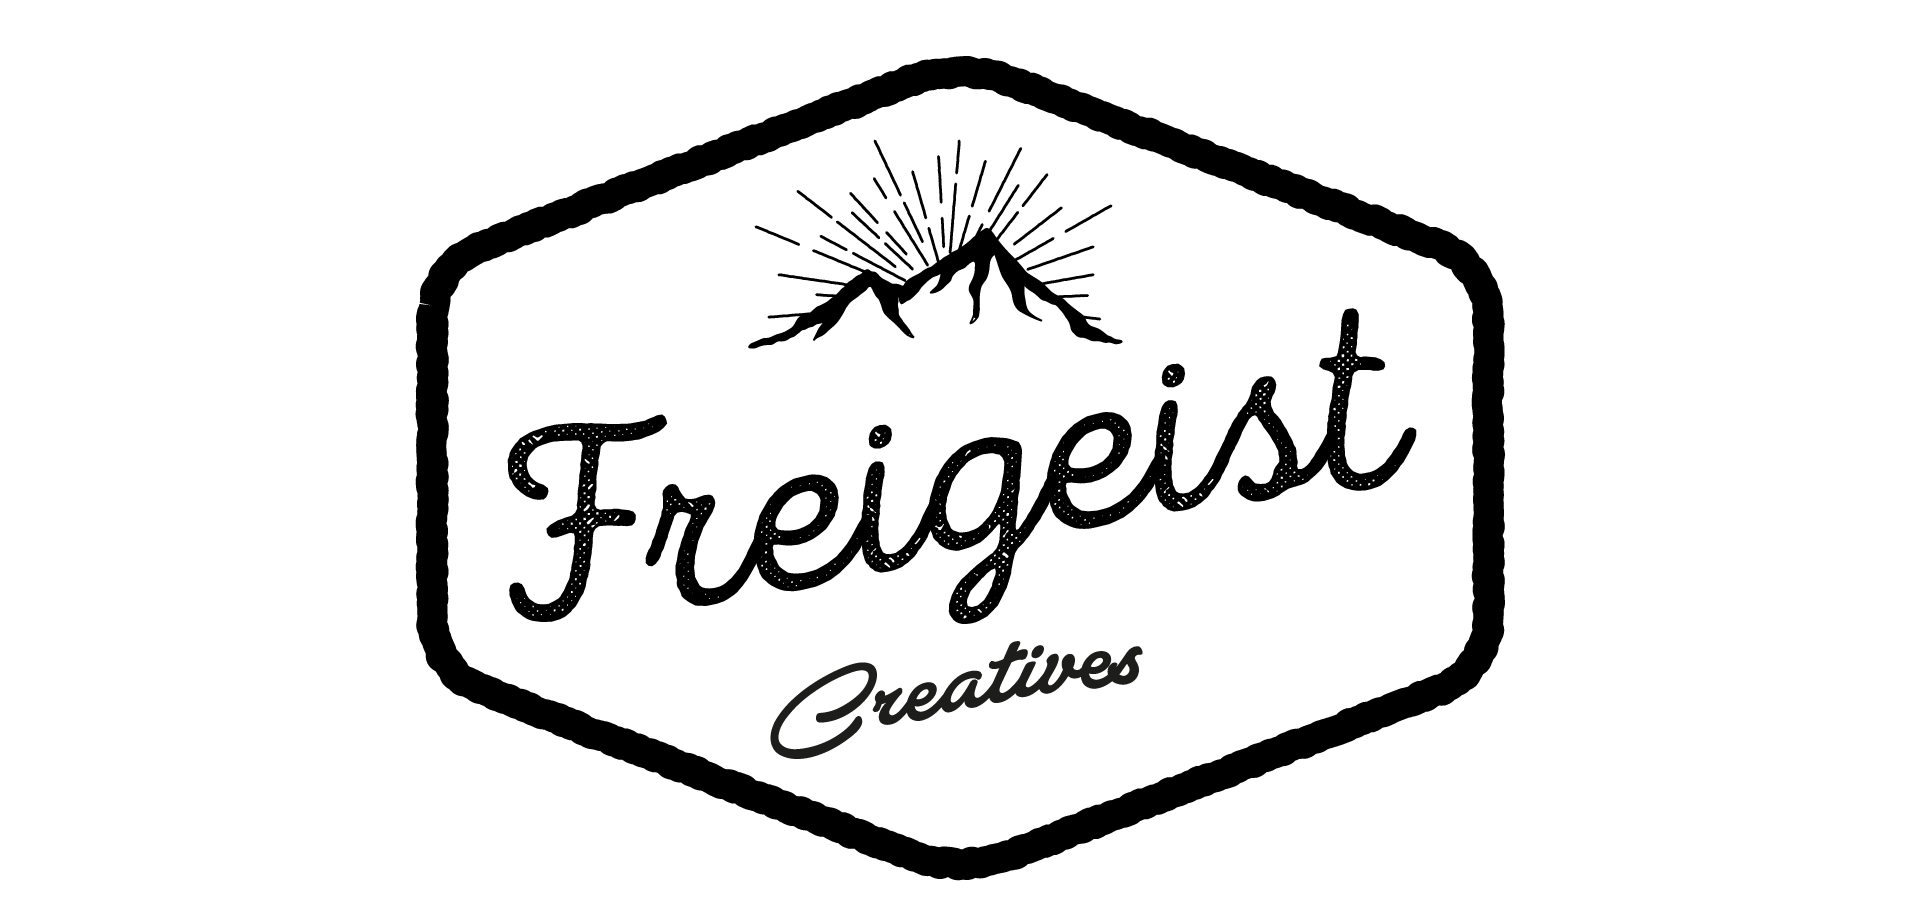 freigeist-creatives.de